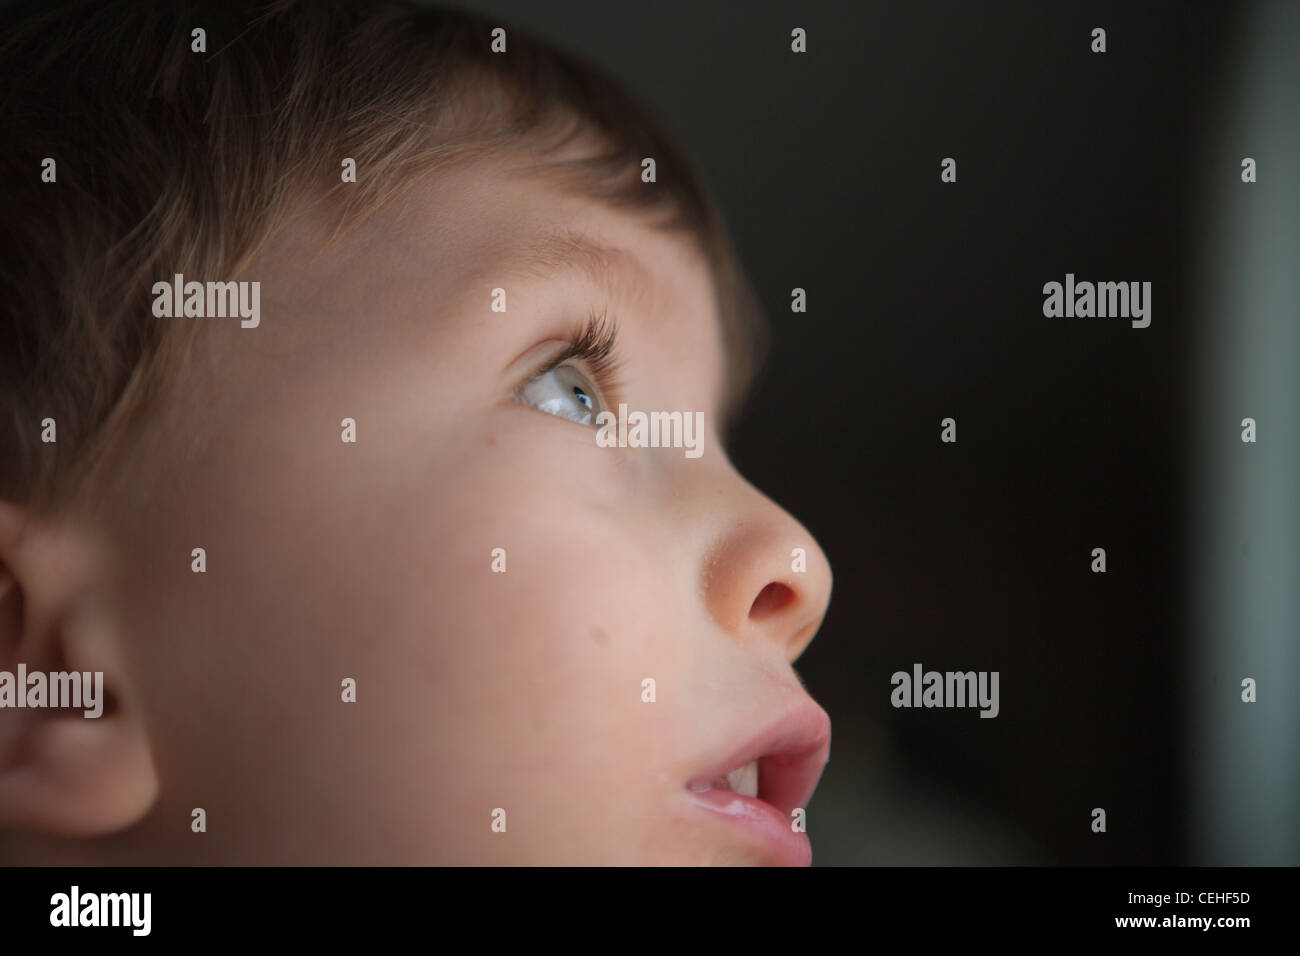 close up of two year old boy looking up through window, profile of face. - Stock Image